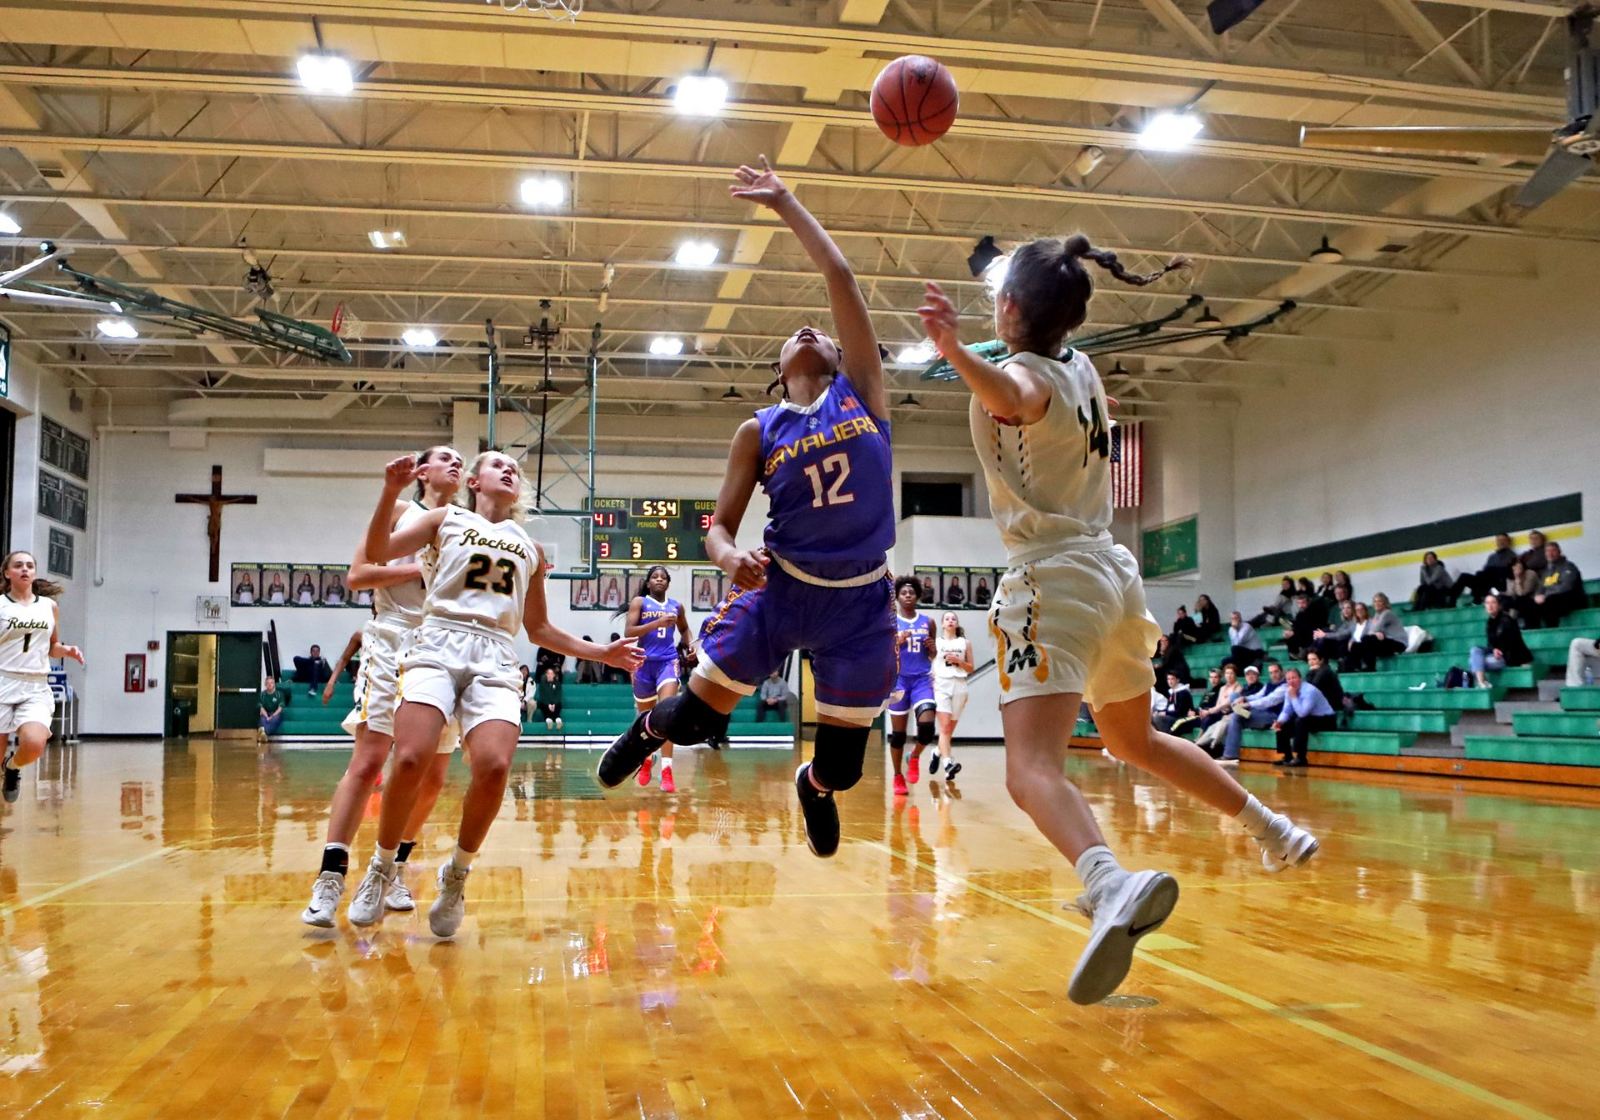 Your Ohio basketball team of the week: Senior-laden Purcell girls ready to take next step